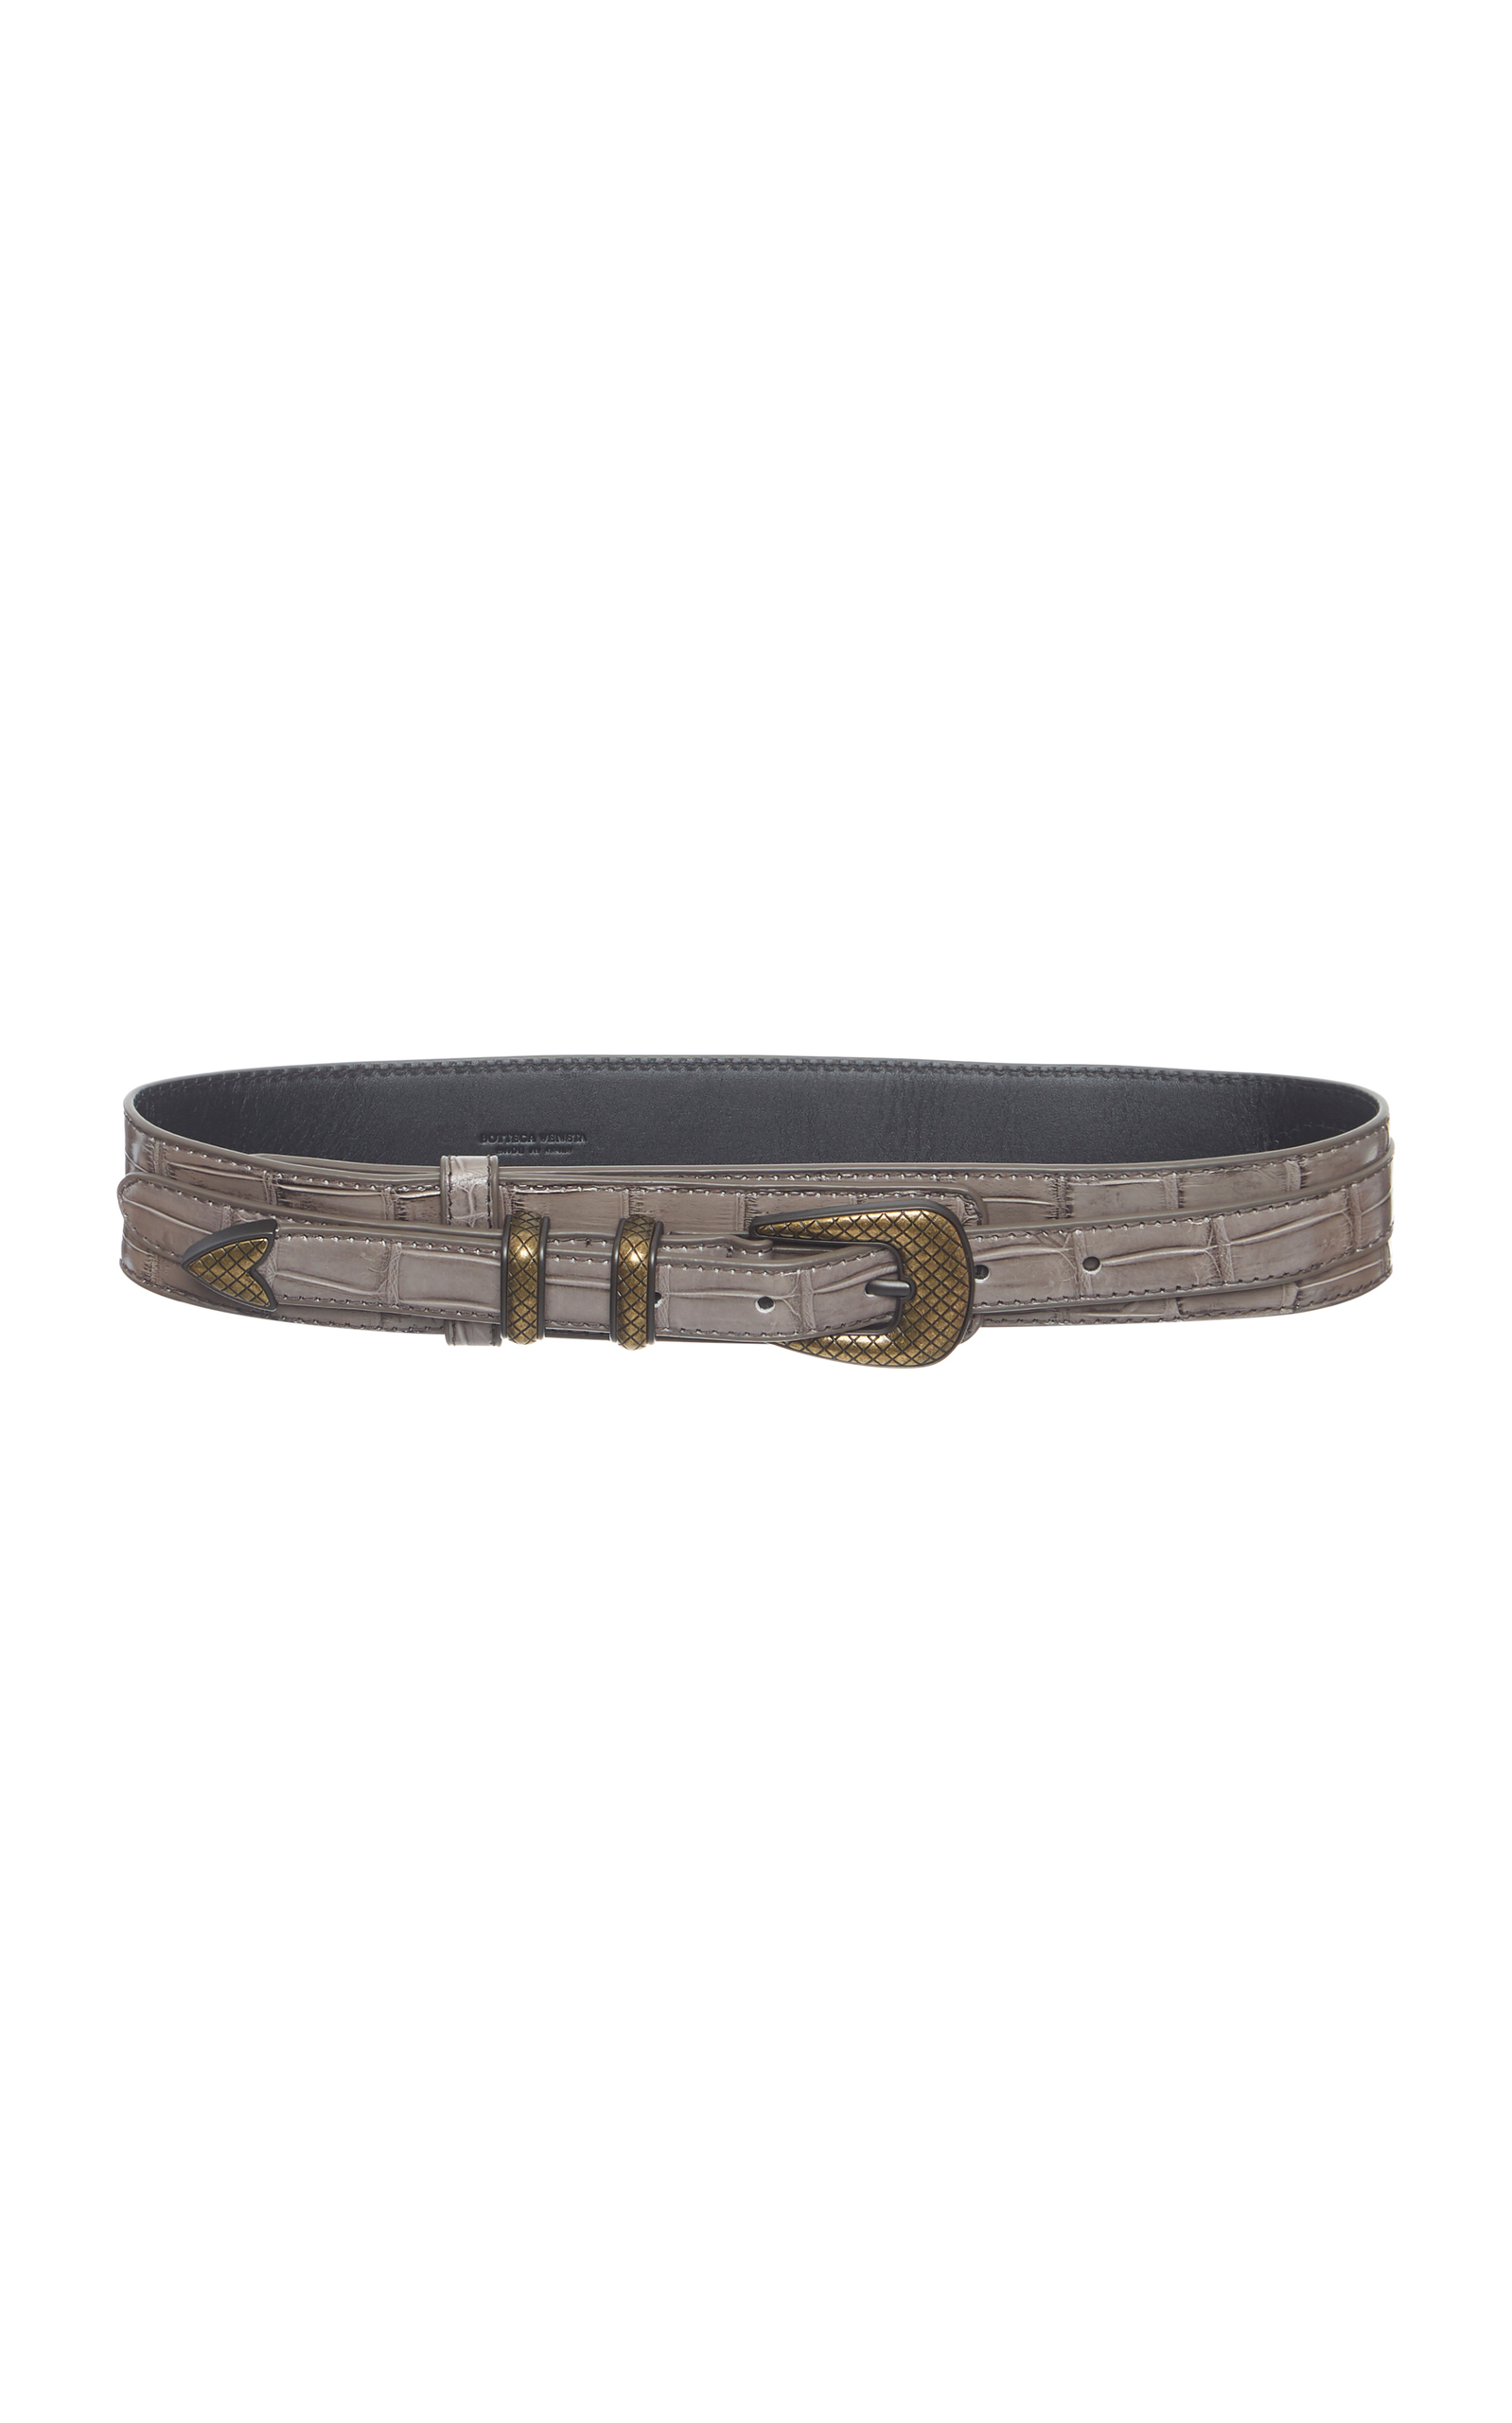 CROCODILE OTTONE BELT